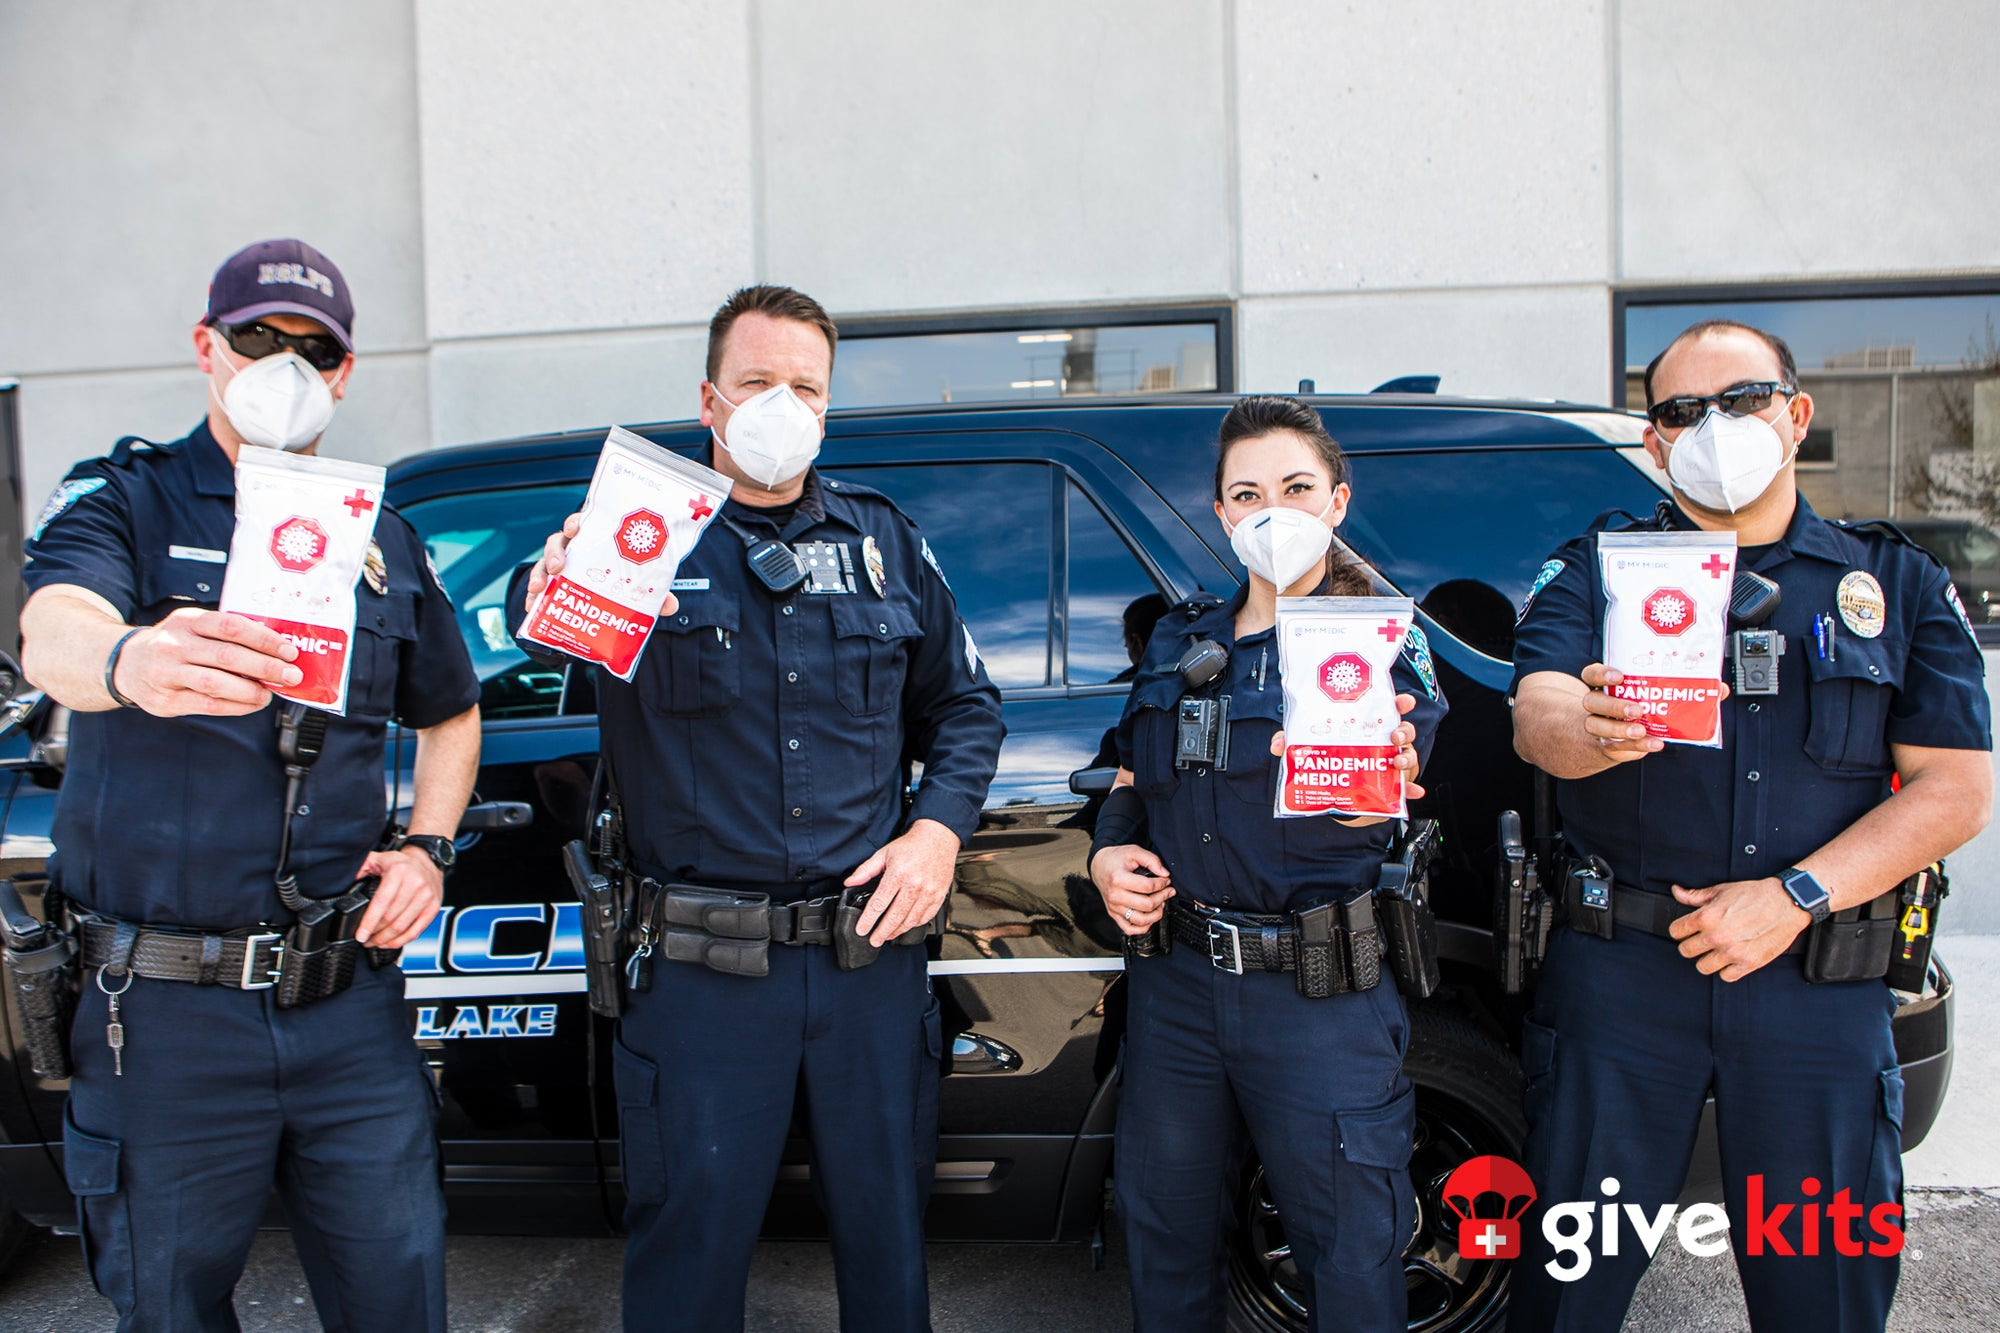 first responders receive personal protection equipment from the Give Kits Foundation